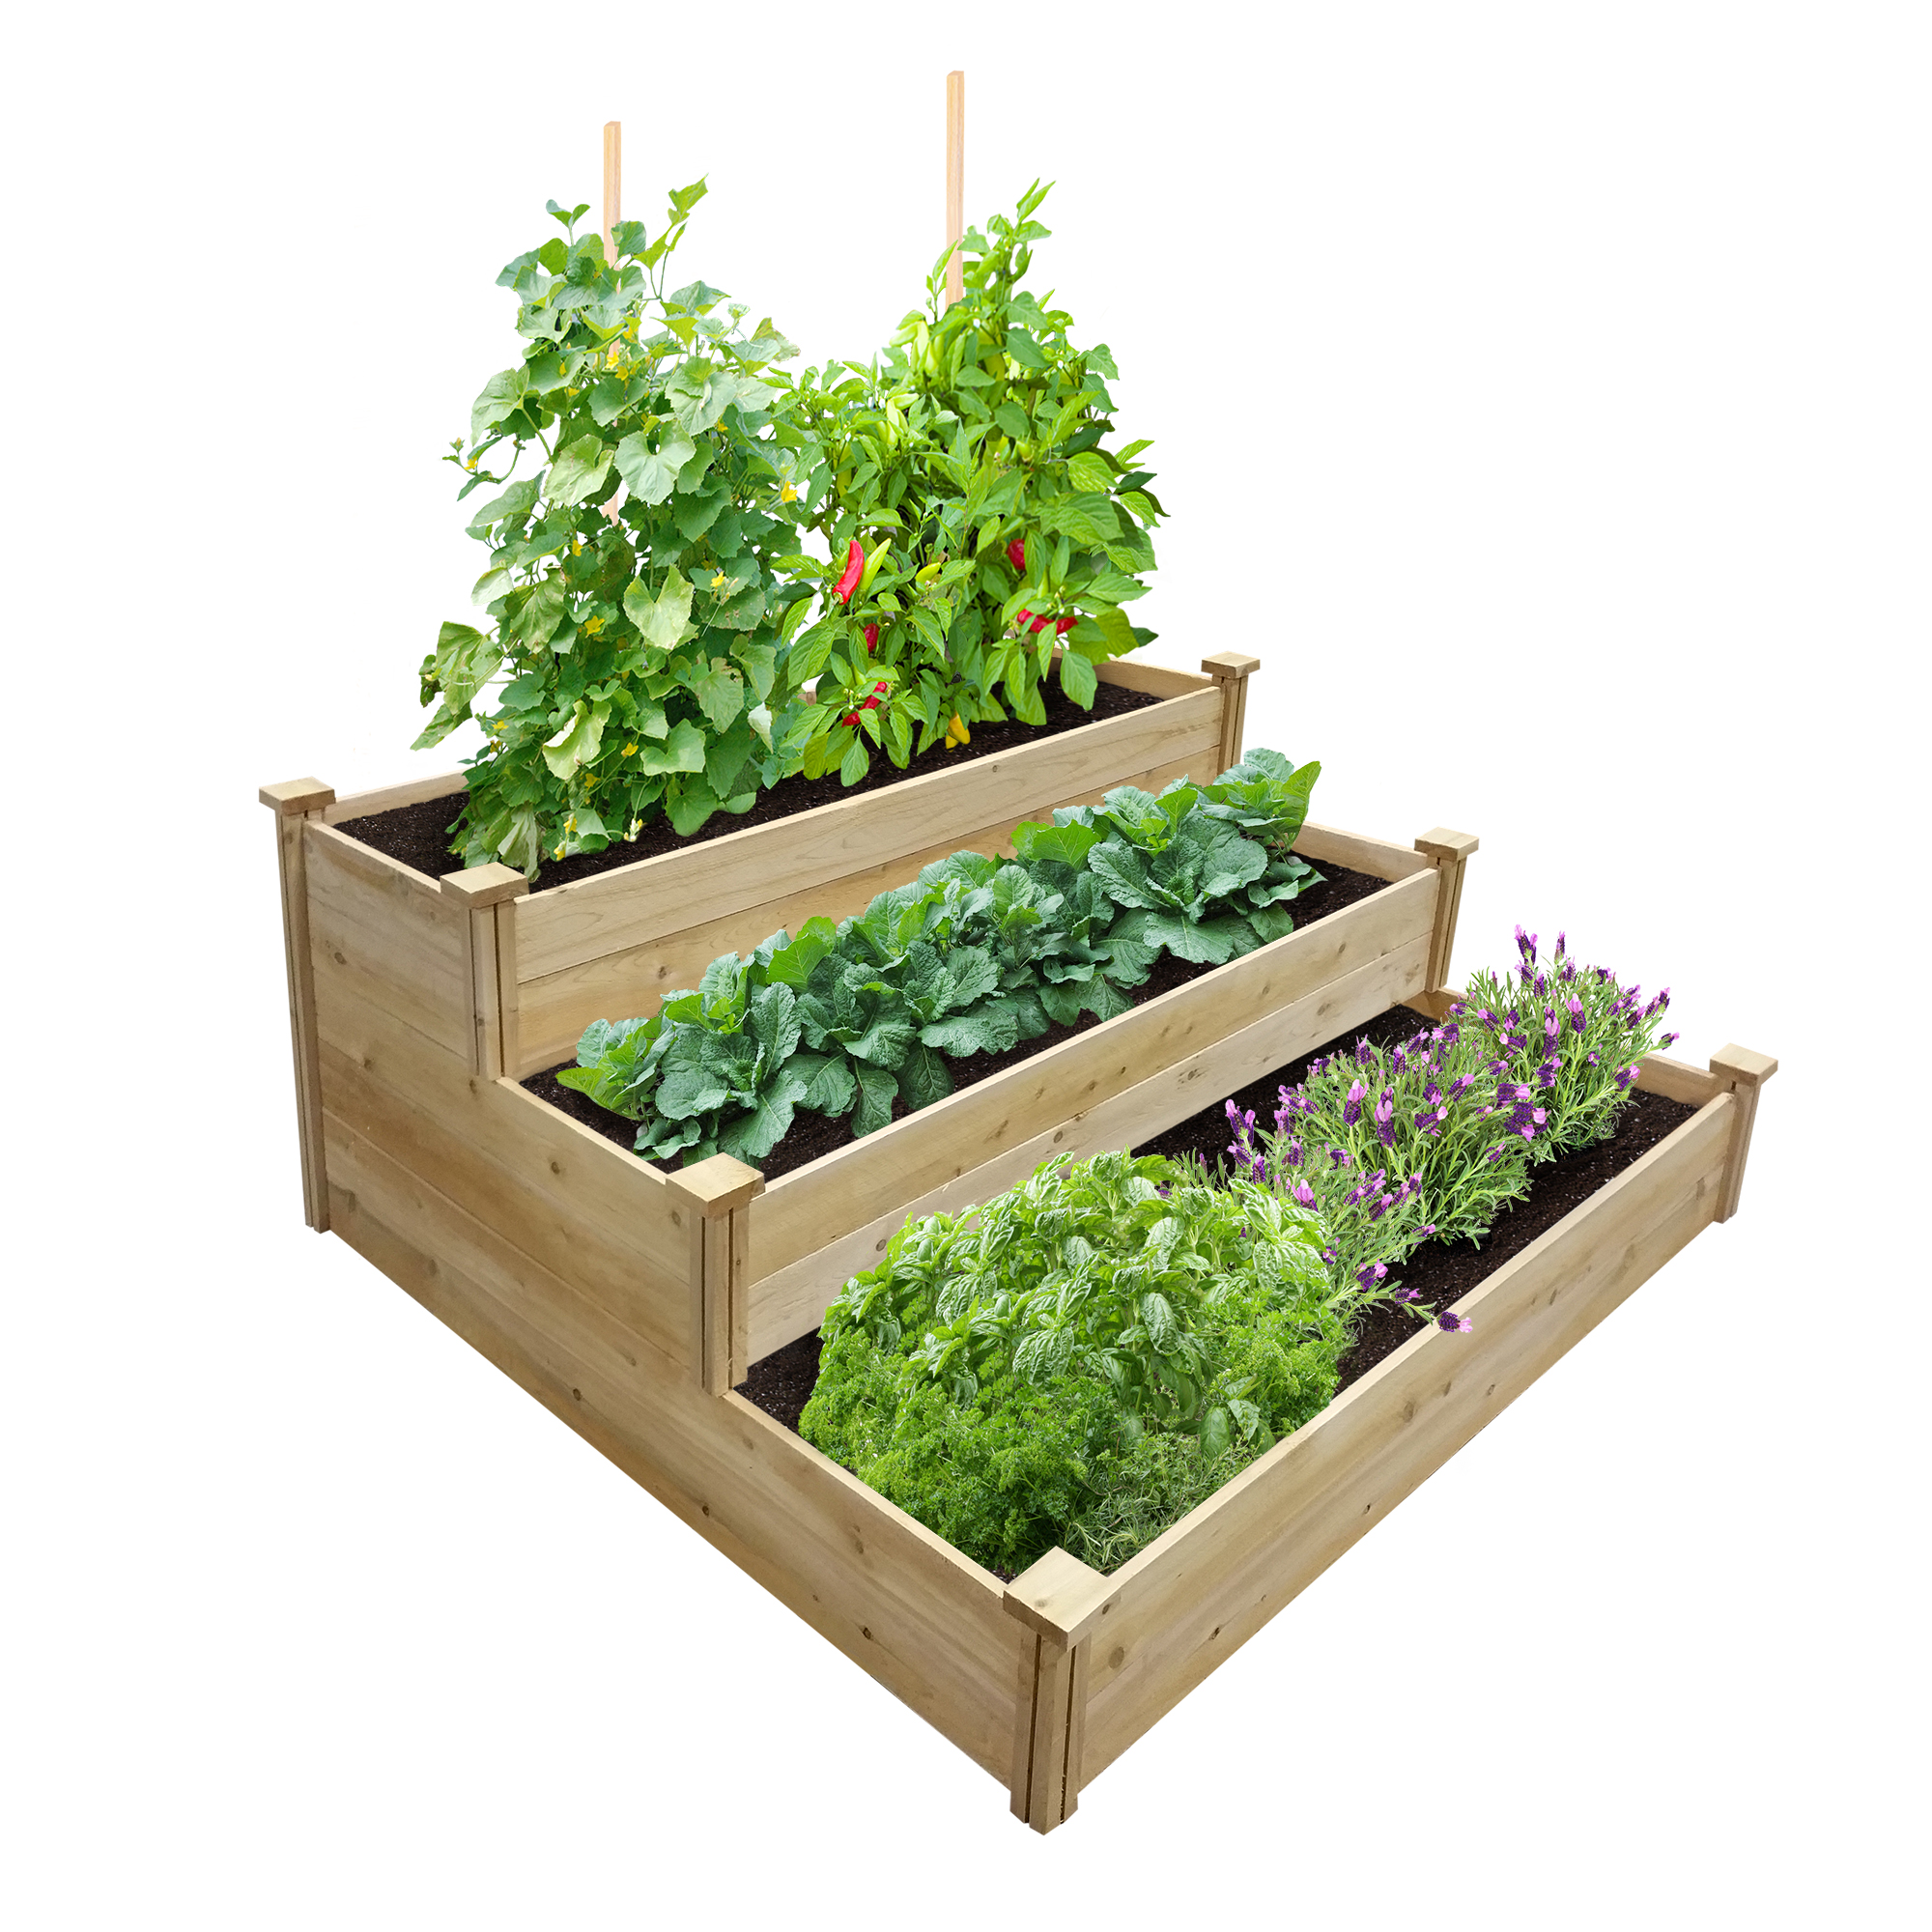 Greenes Value 3-Tiered Cedar Raised Garden Bed 4 ft. x 4 ft. x 21 in., Unfinished (.5-.625 in. thick)